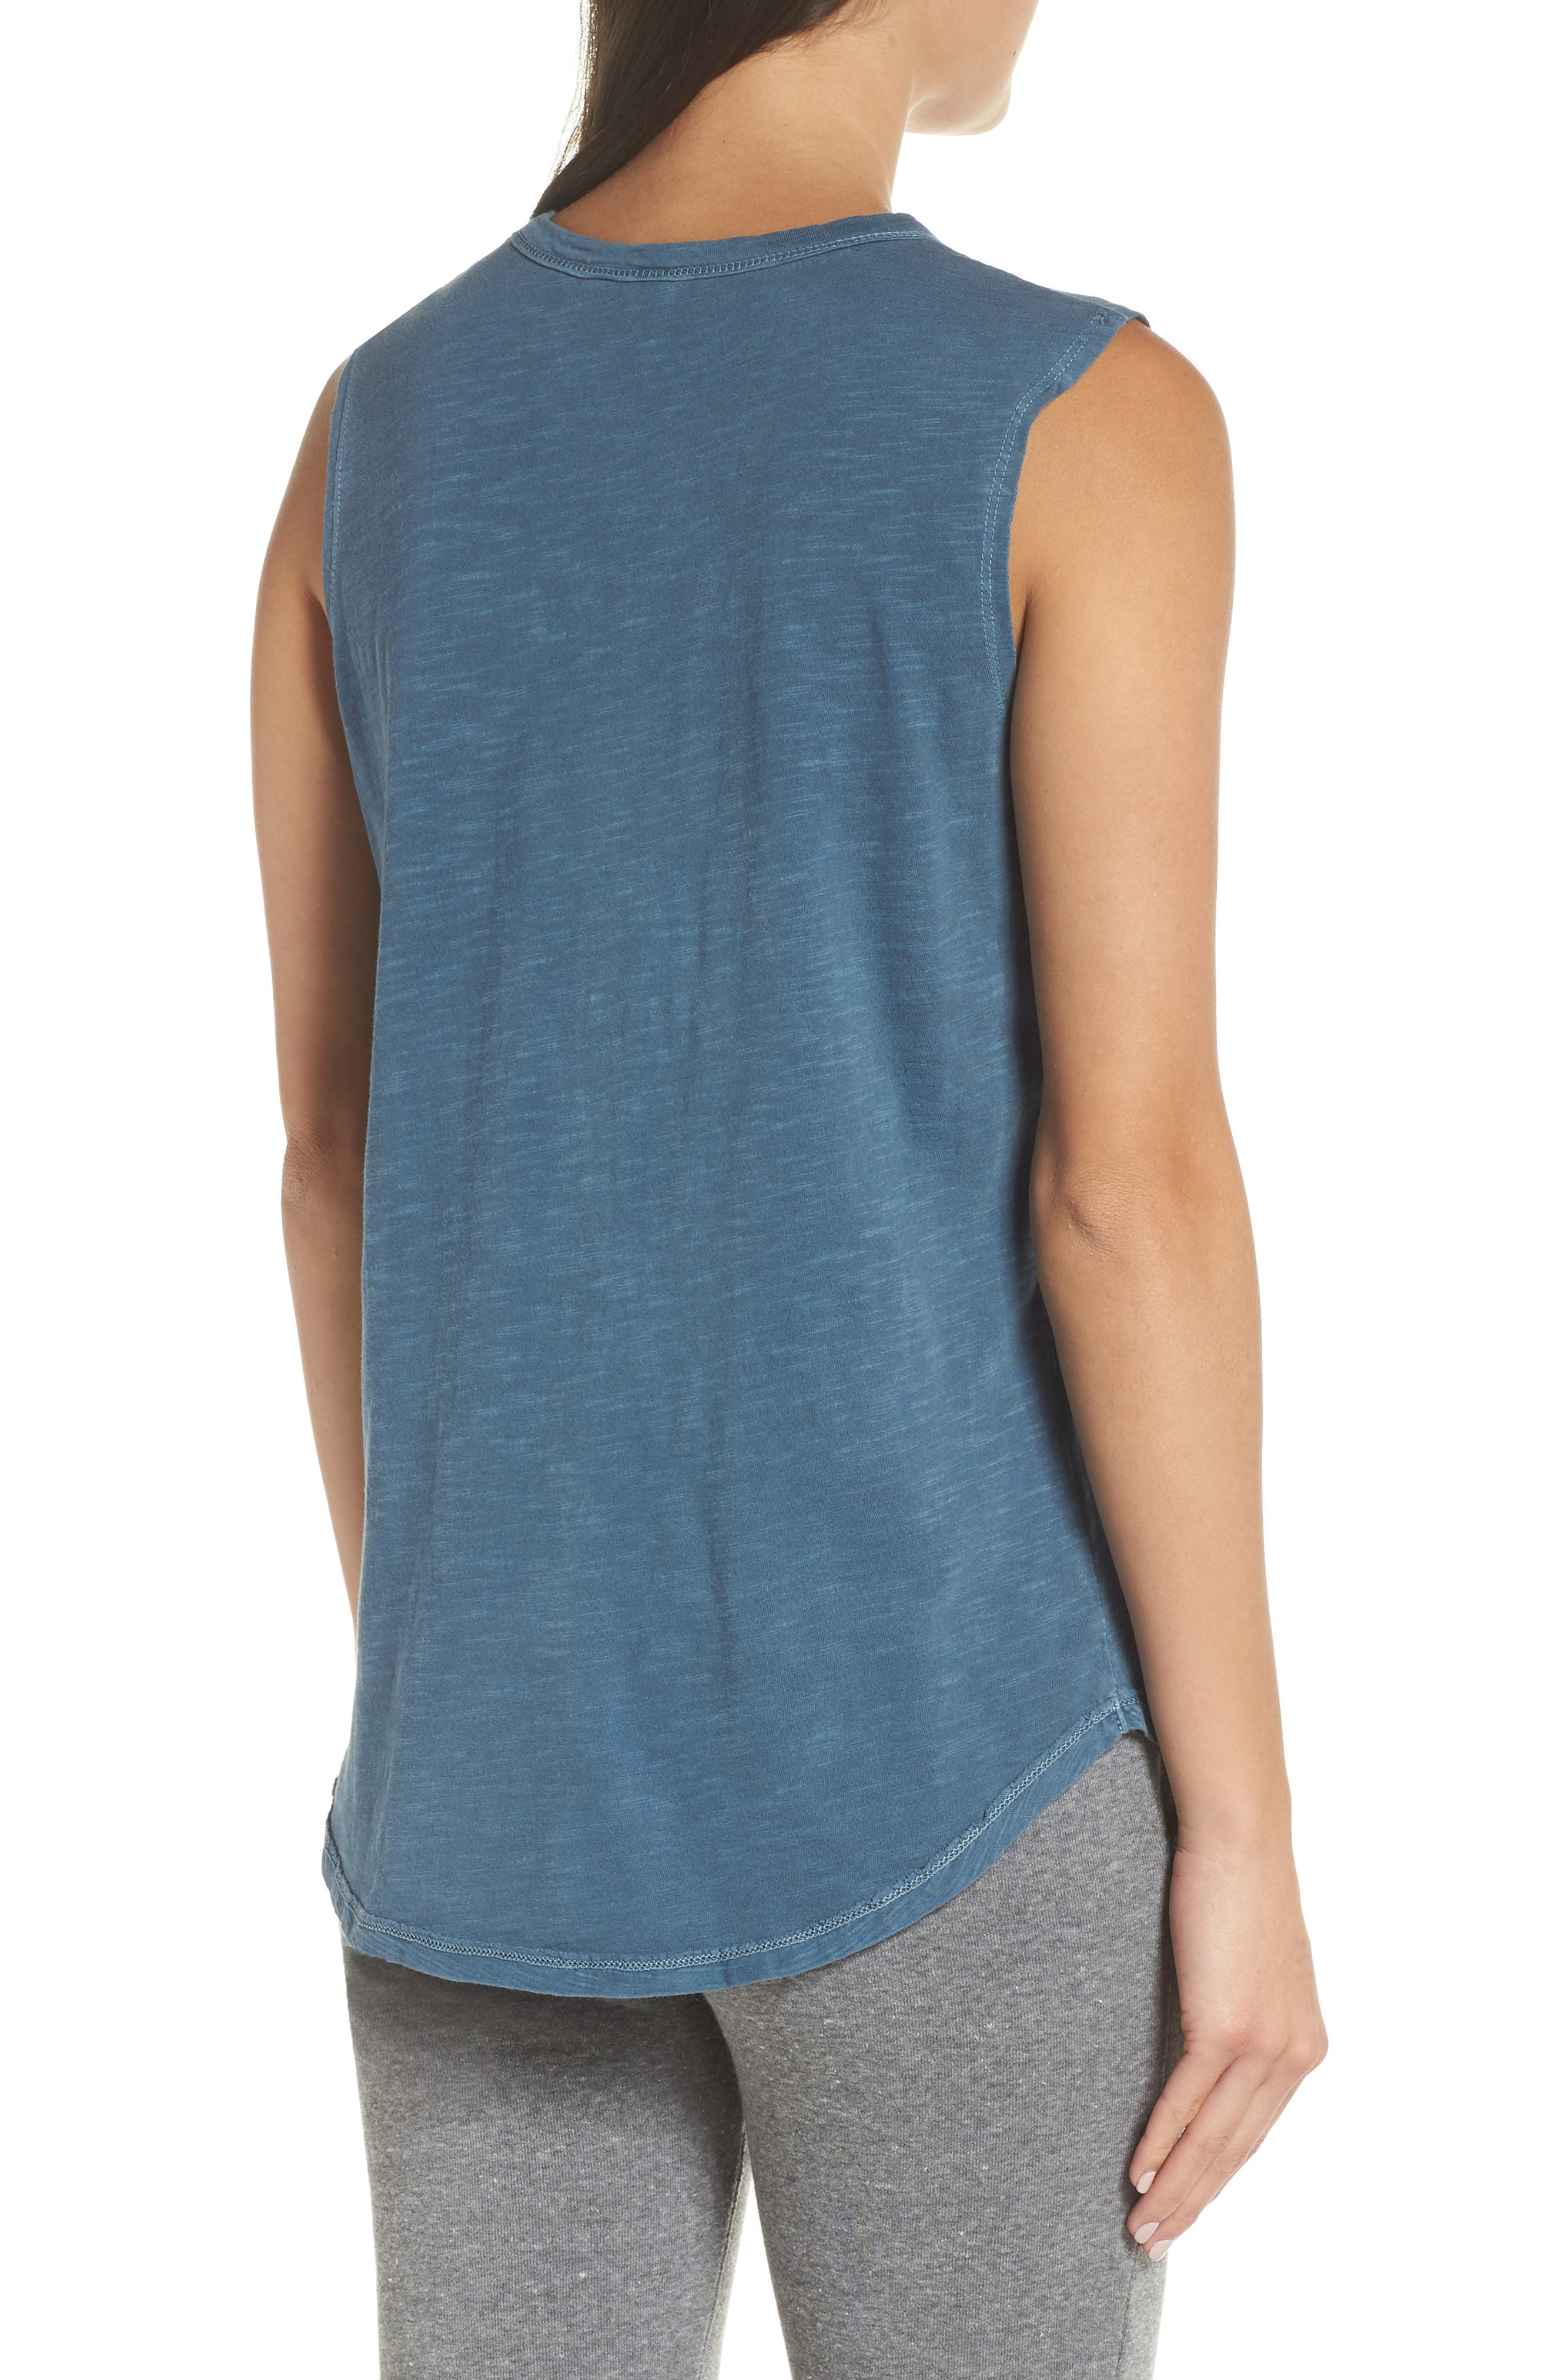 Inside Out Muscle Tee,                             Alternate thumbnail 2, color,                             MINERAL BLUE PIGMENT